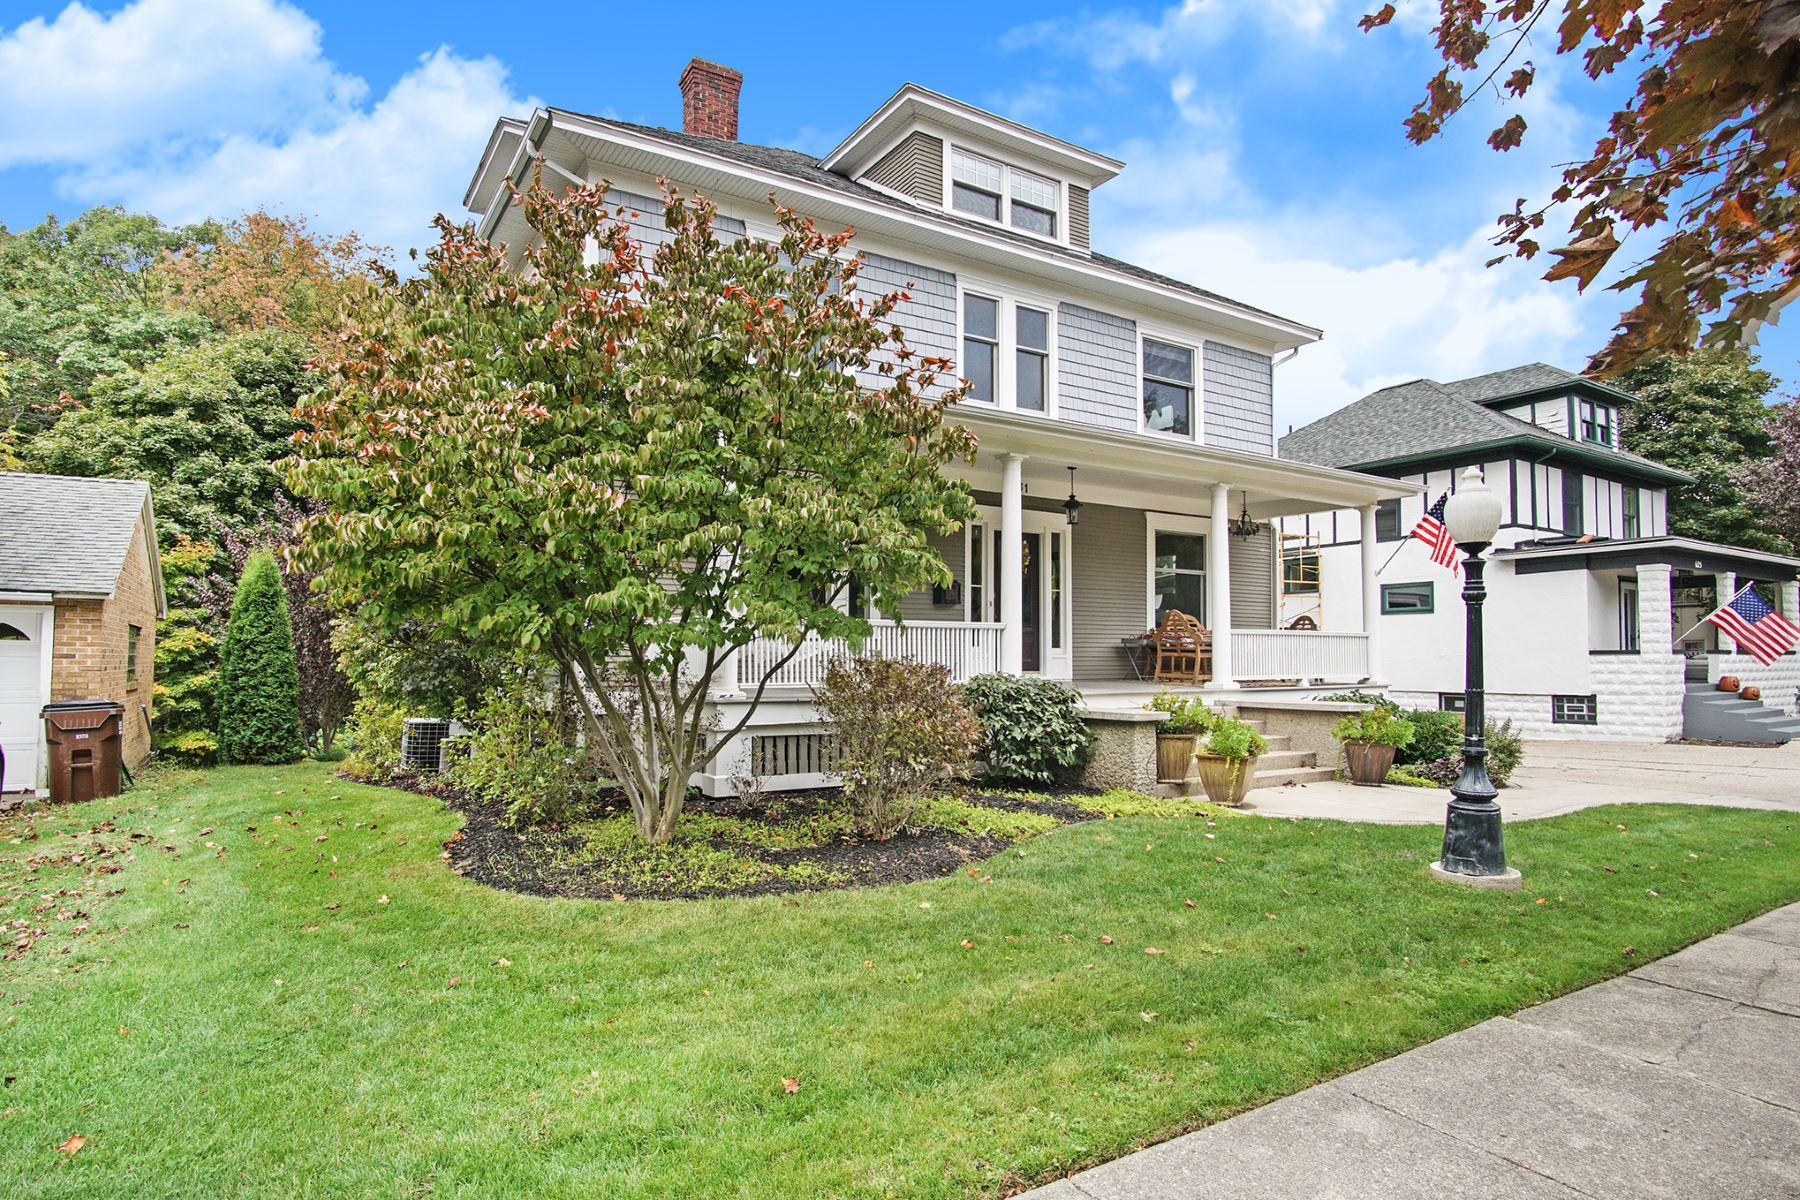 Single Family Homes for Sale at Distinguished Neighborhood Home 631 Lake Avenue Grand Haven, Michigan 49417 United States